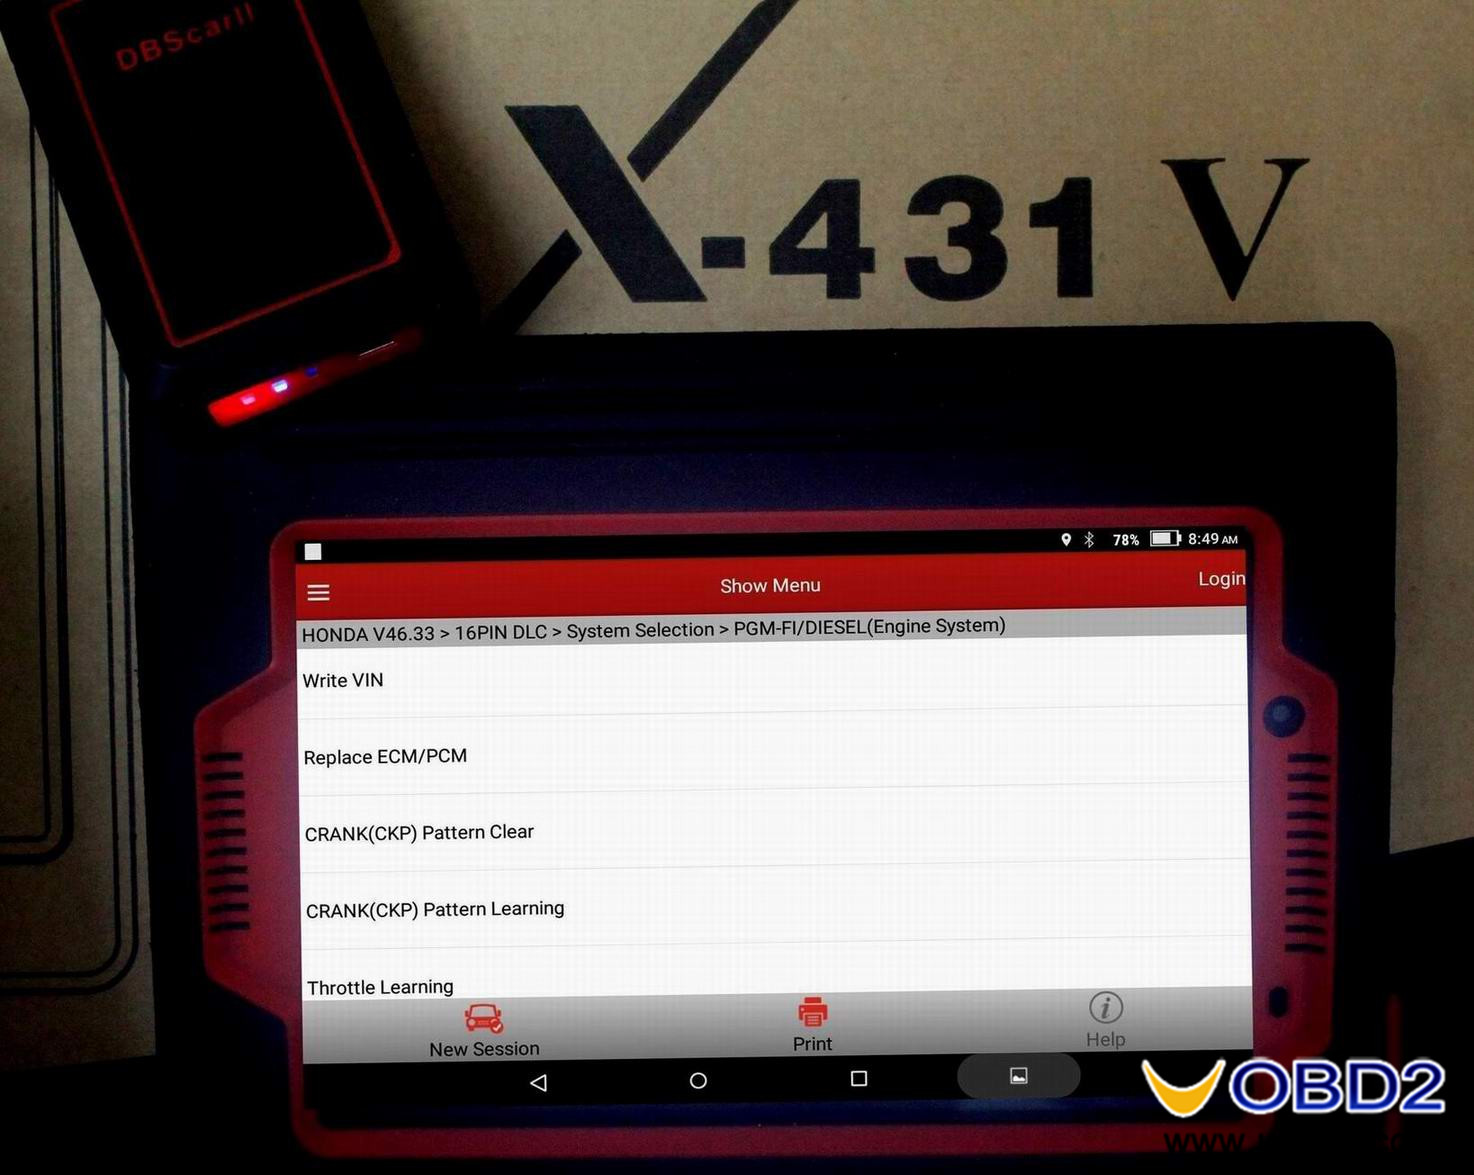 launch-x431-v-8-inch-diagnostic-tablet-honda-1